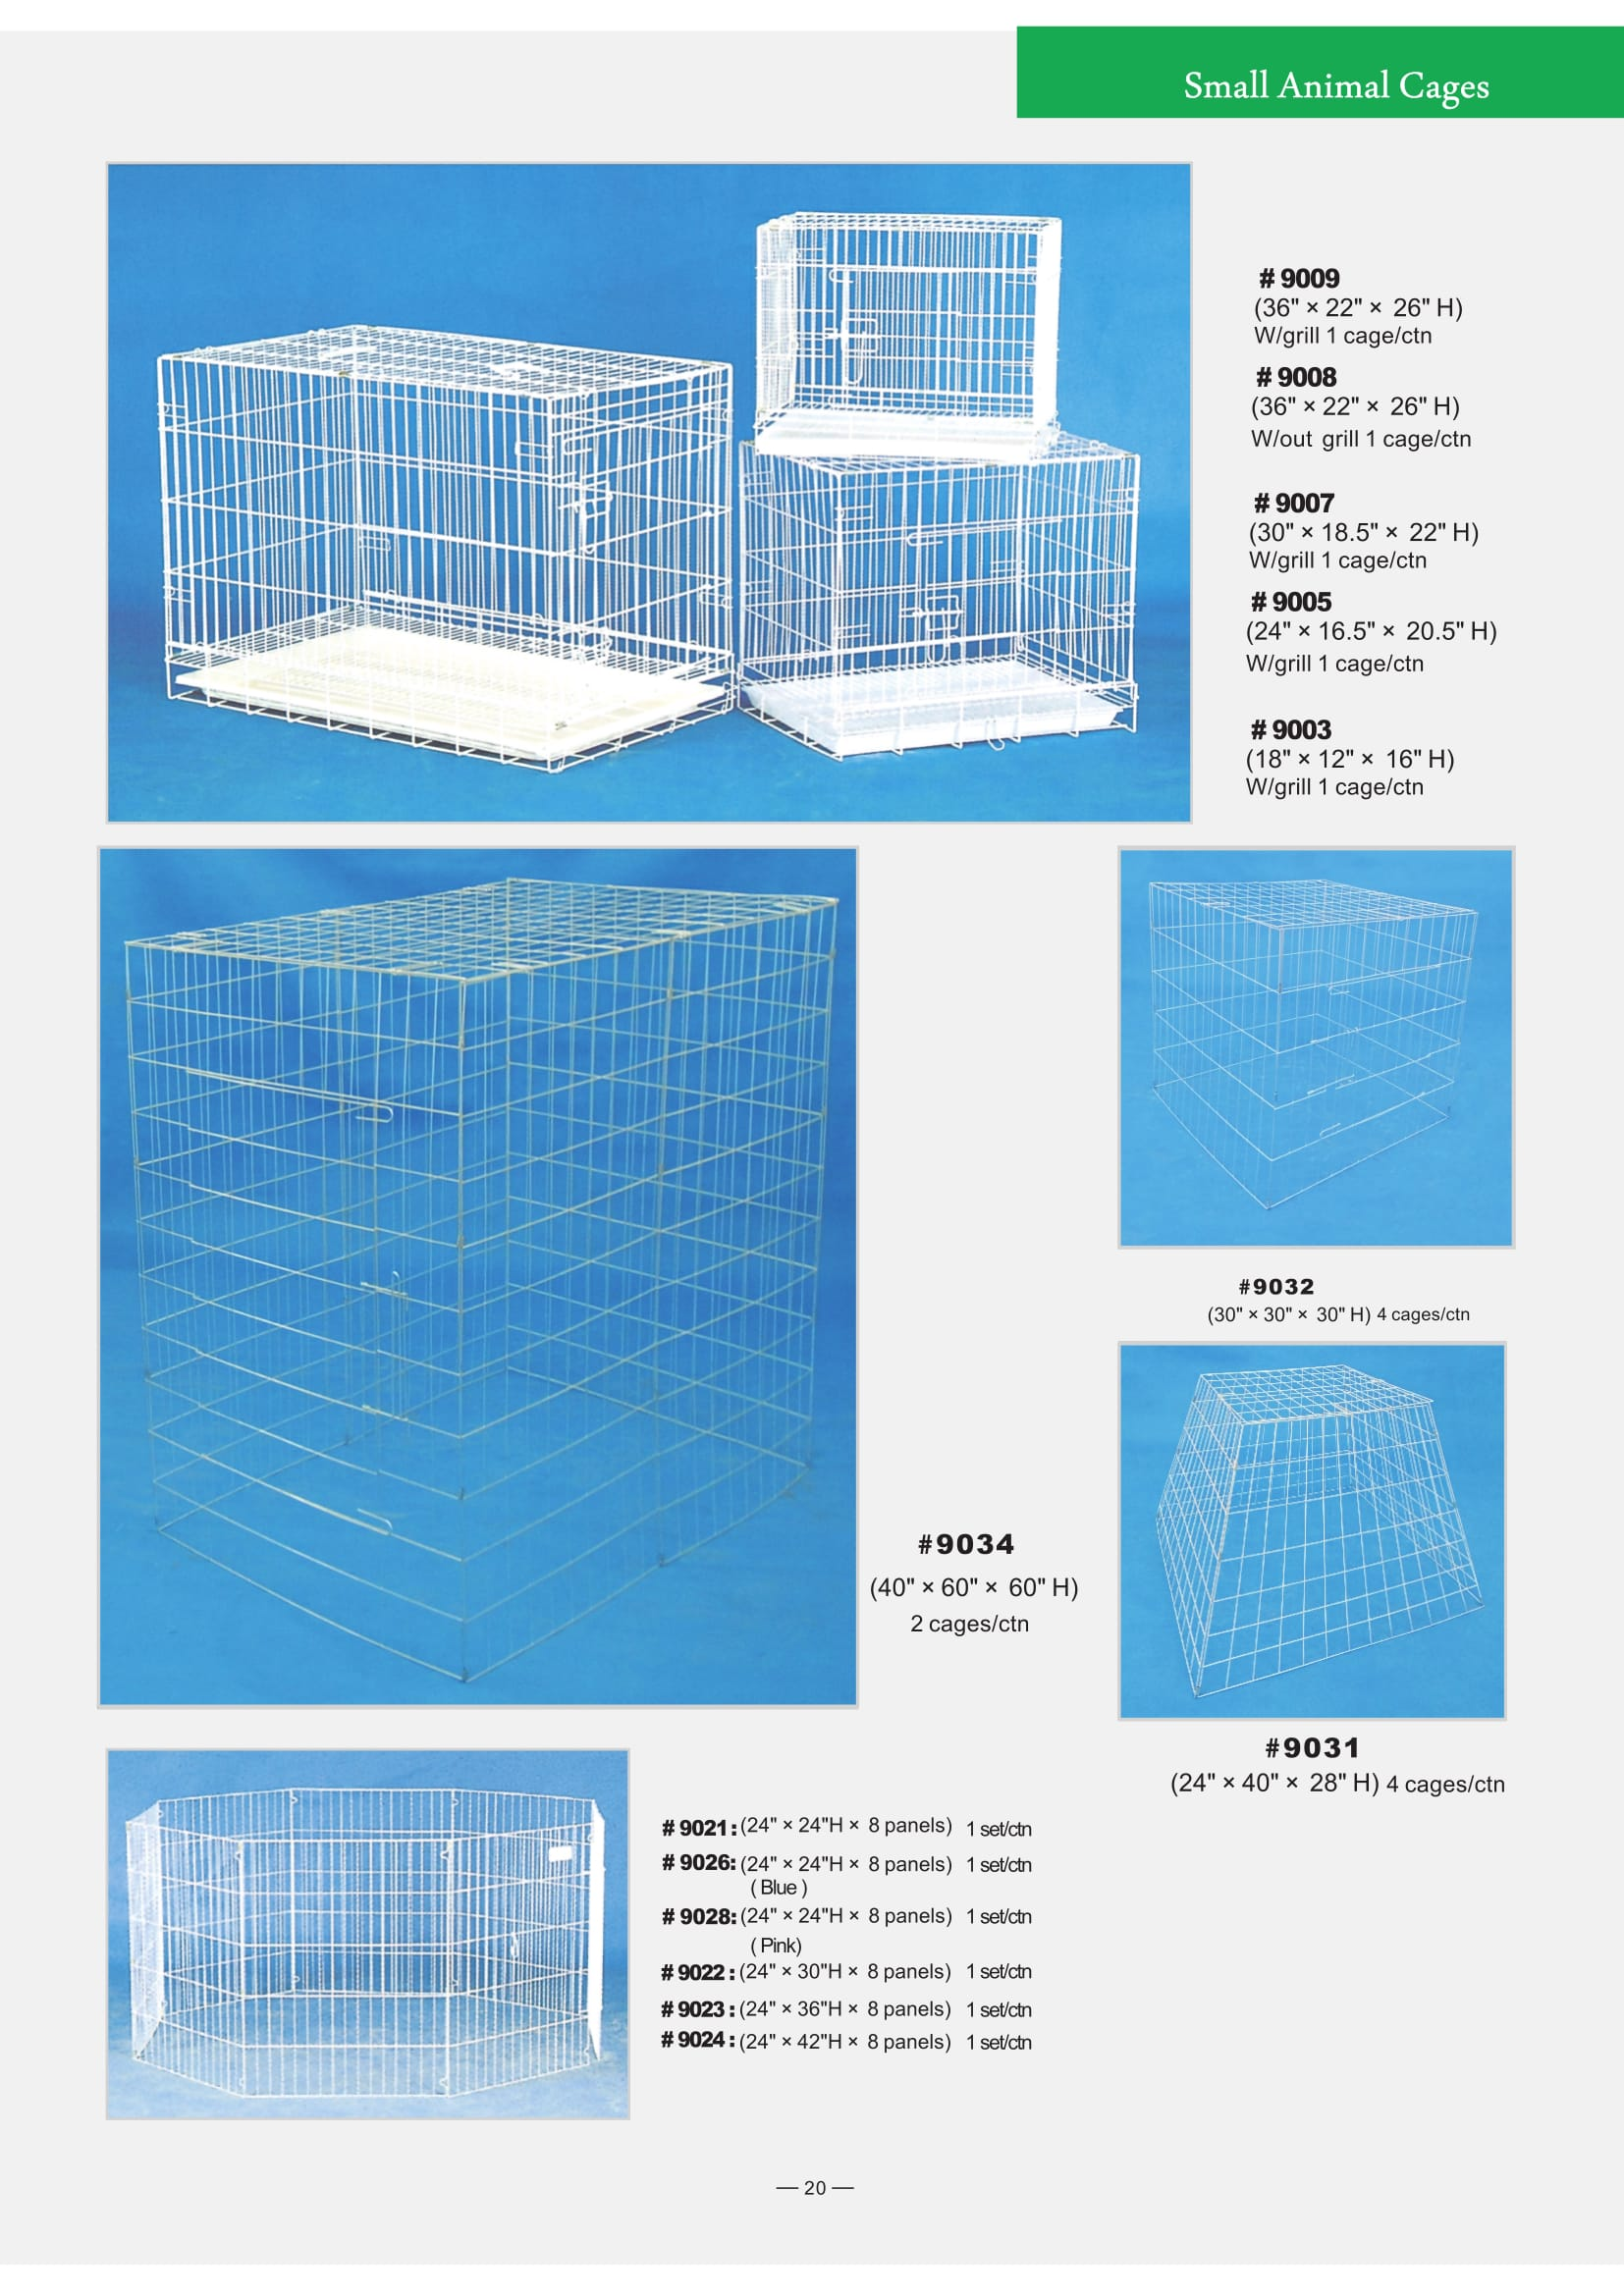 7. Small Animals Cages-4